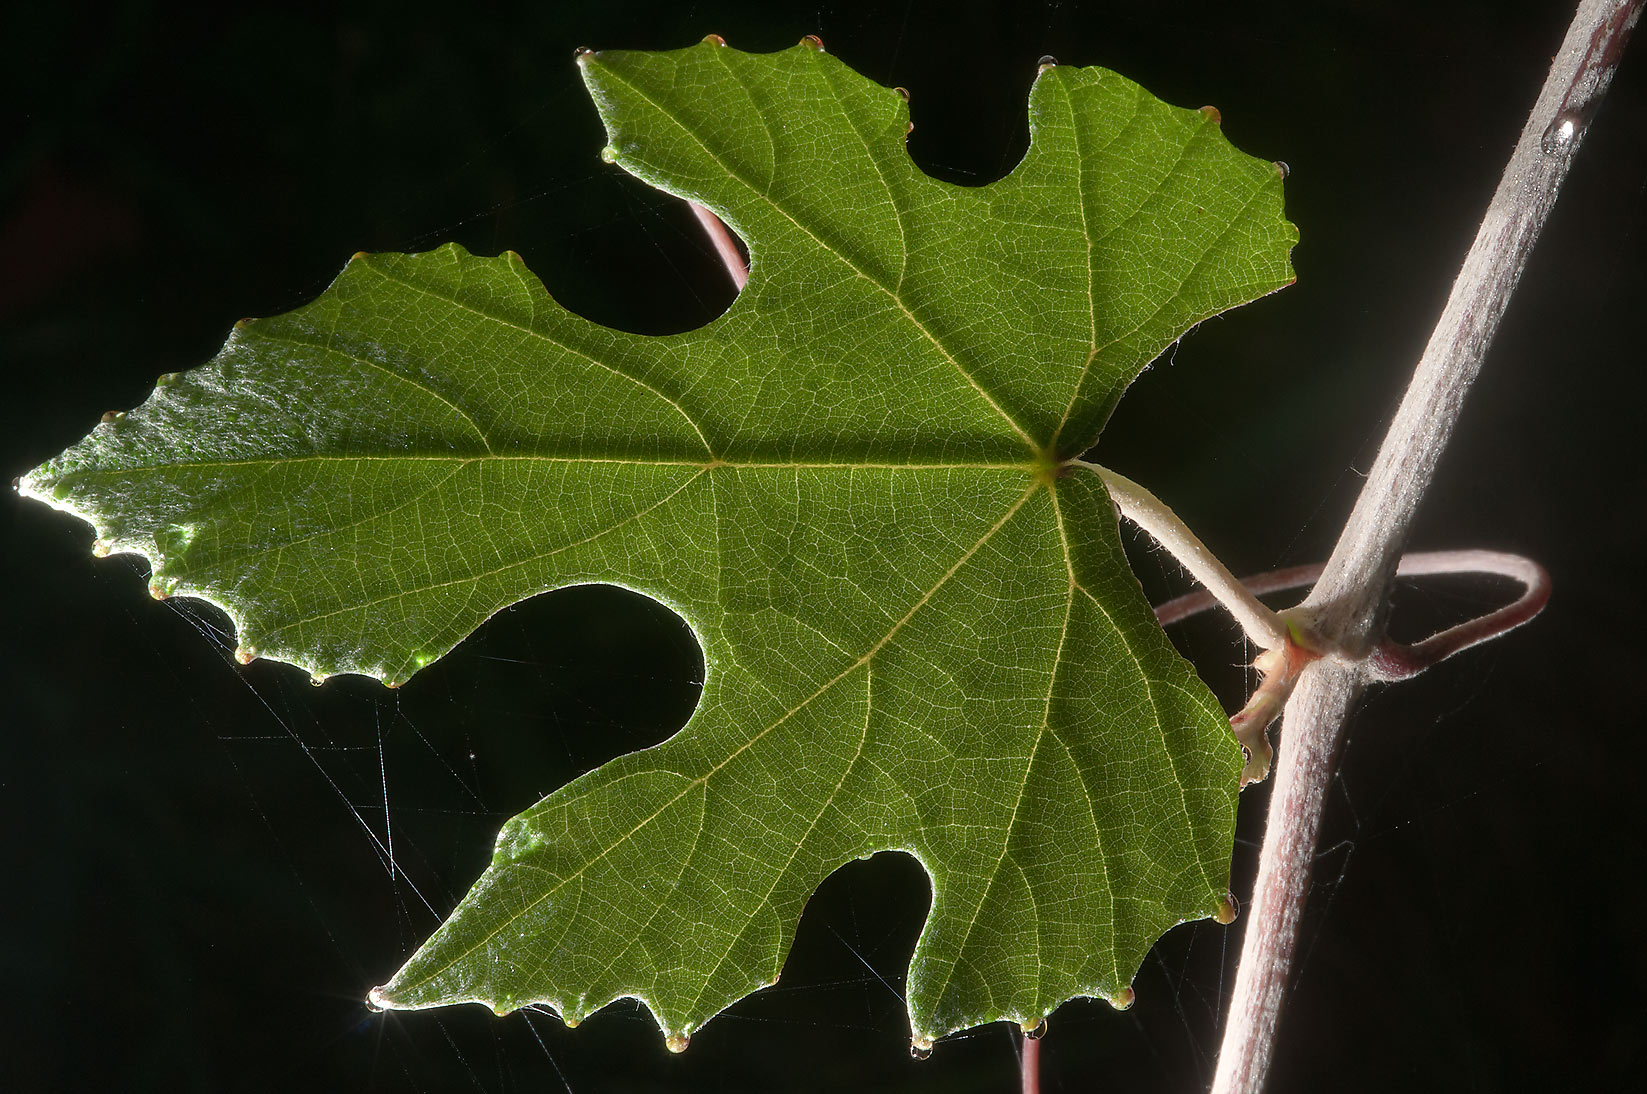 Leaf of mustang grape in Lick Creek Park. College Station, Texas